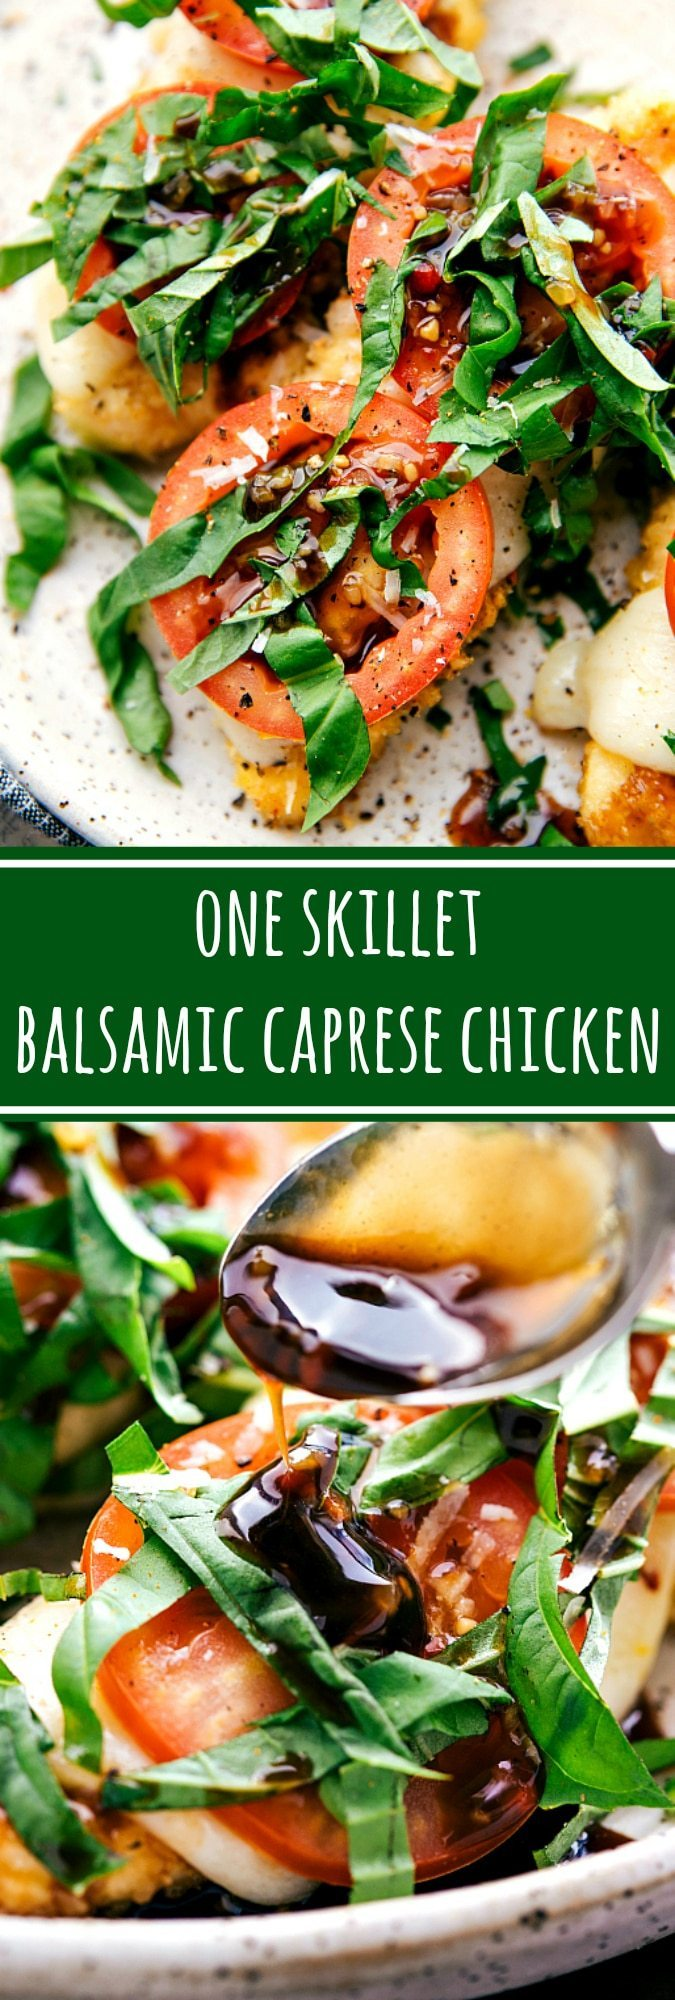 The EASIEST chicken dinner! One skillet, 10 easy ingredients caprese chicken